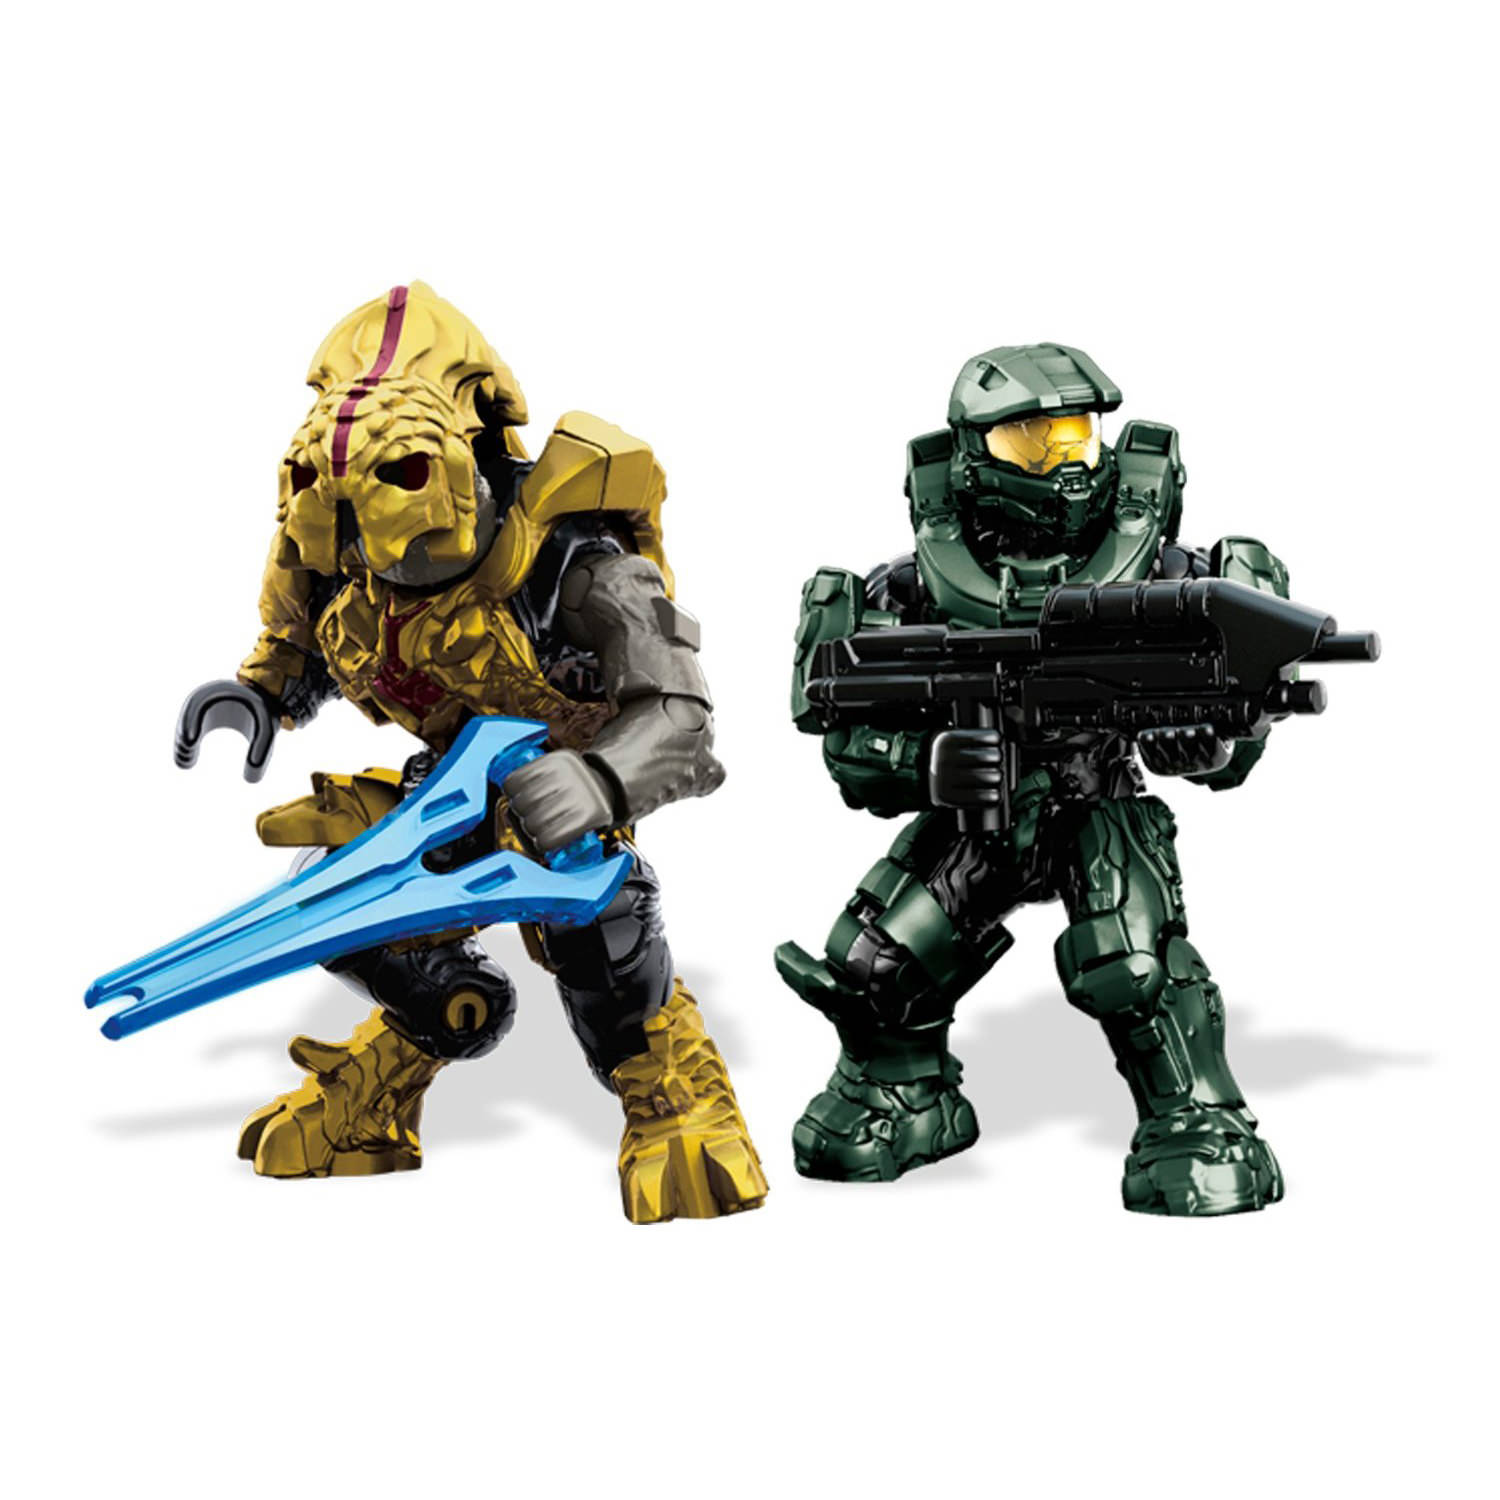 Mega Bloks Halo Unsc Attack Gausshog Building Set At Hobby